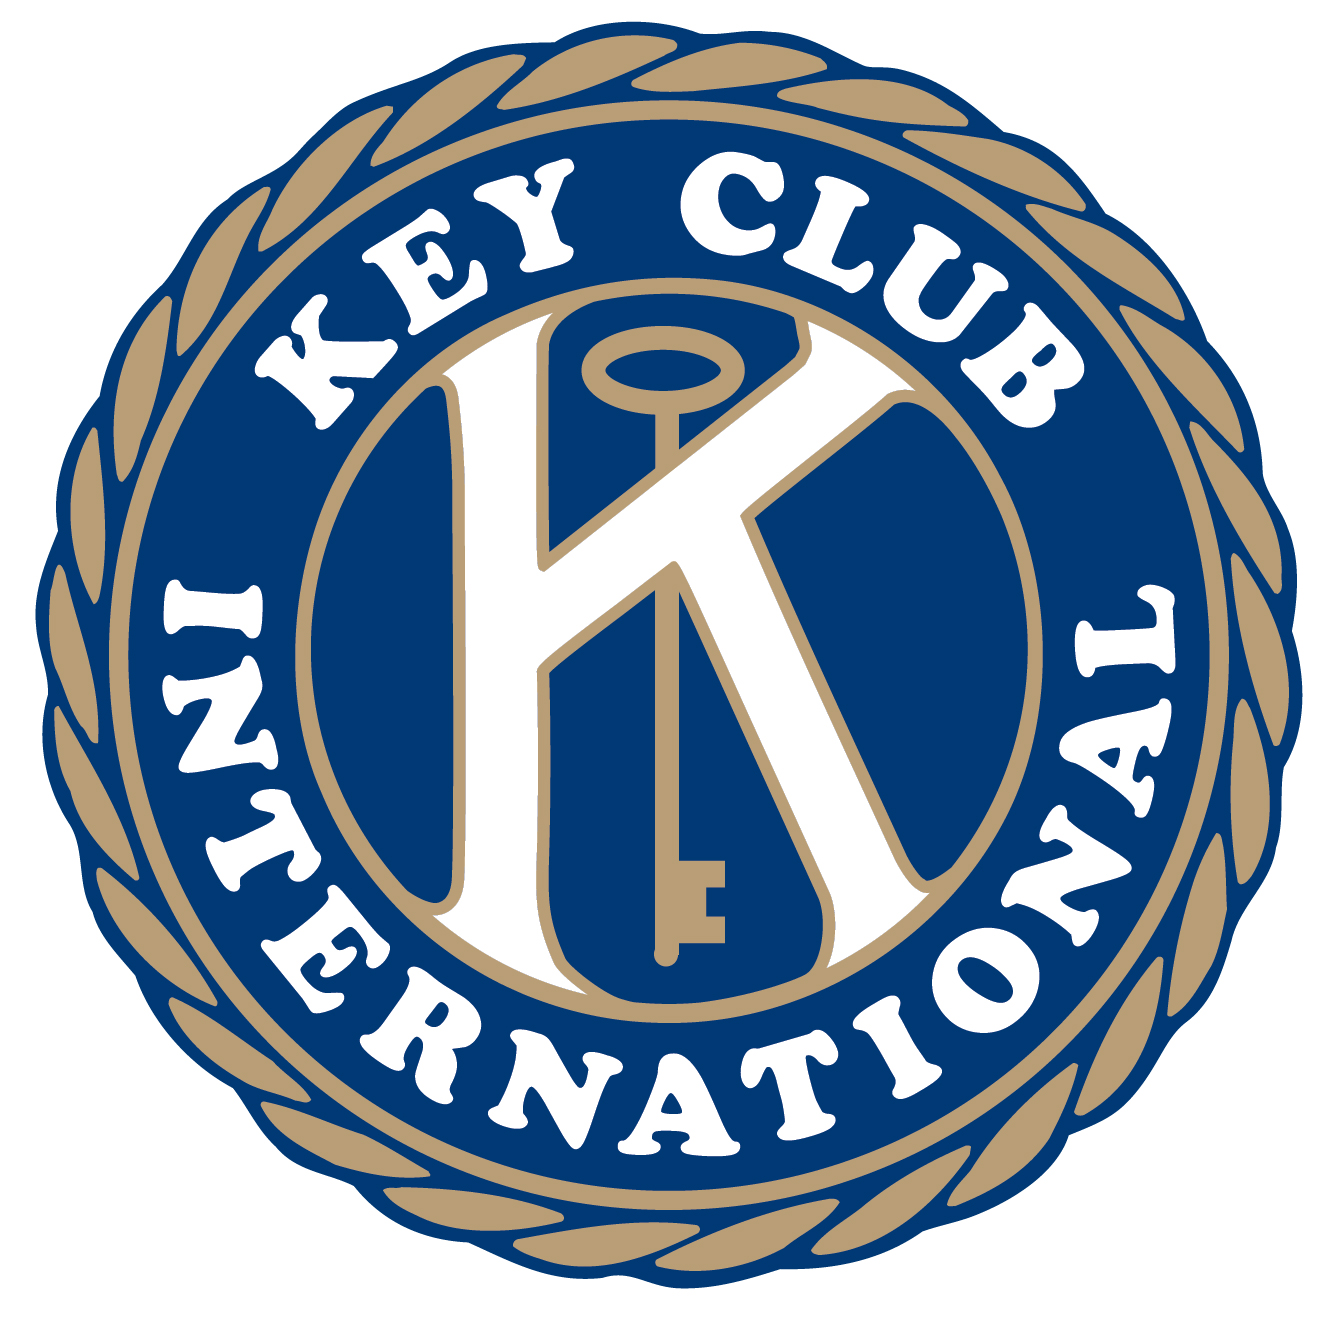 KEY-CLUB-SEAL-Color-1.jpg